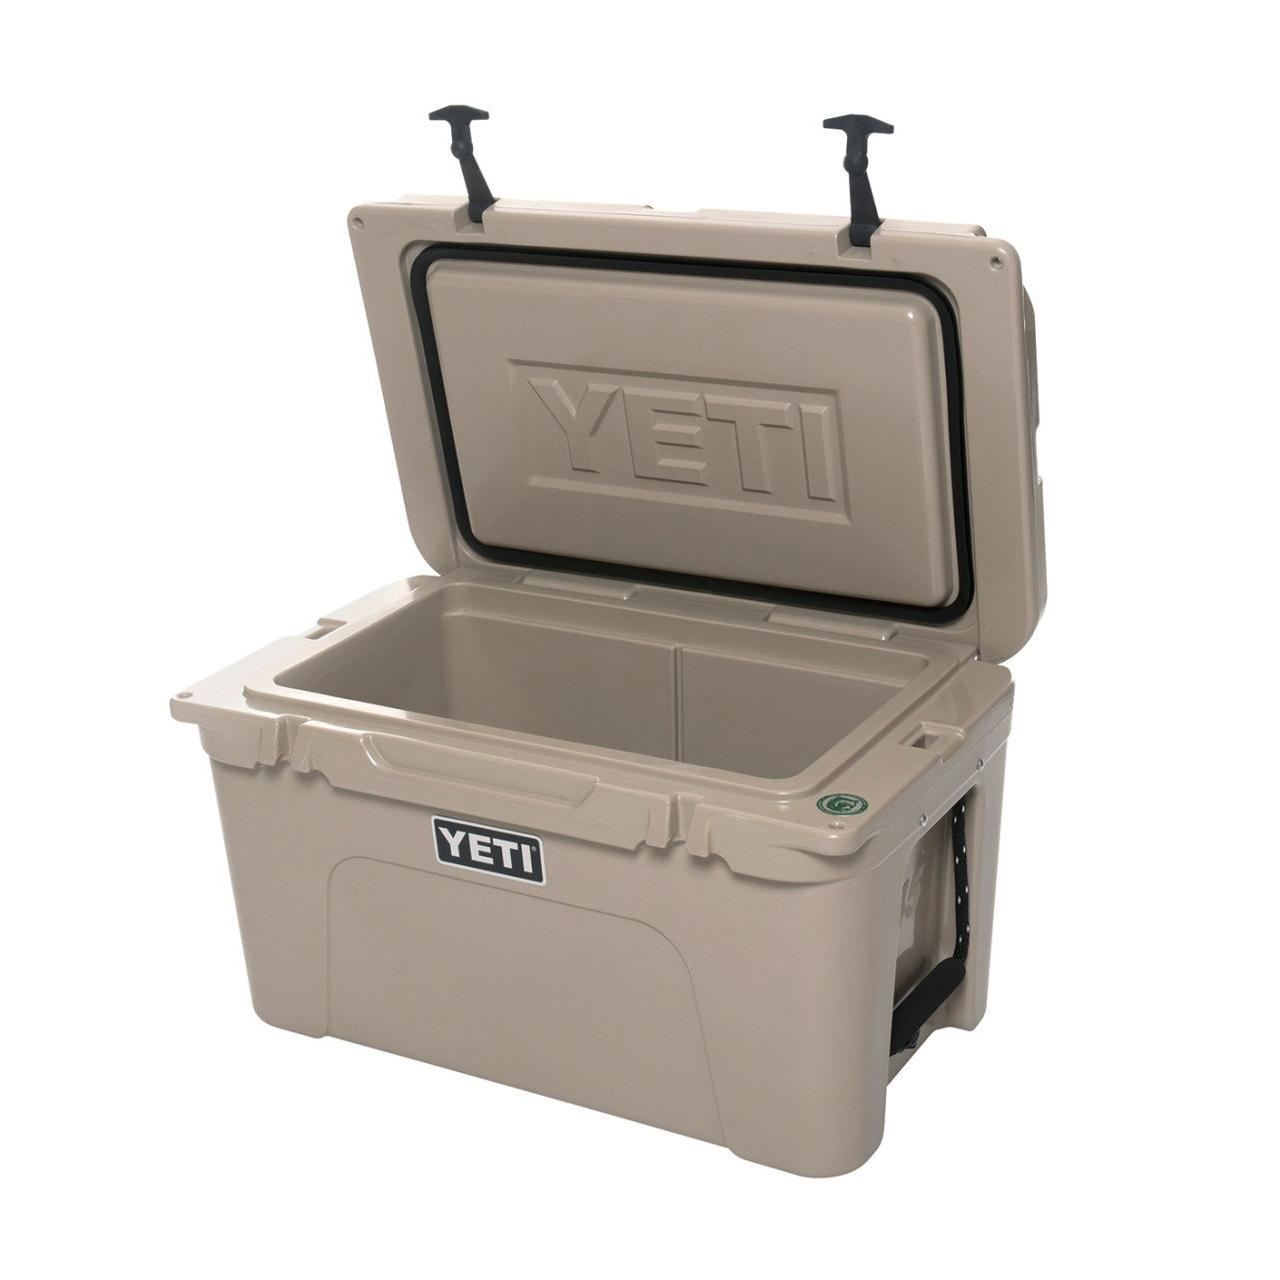 NRA supporters are blowing up Yeti coolers  Yeti says it's